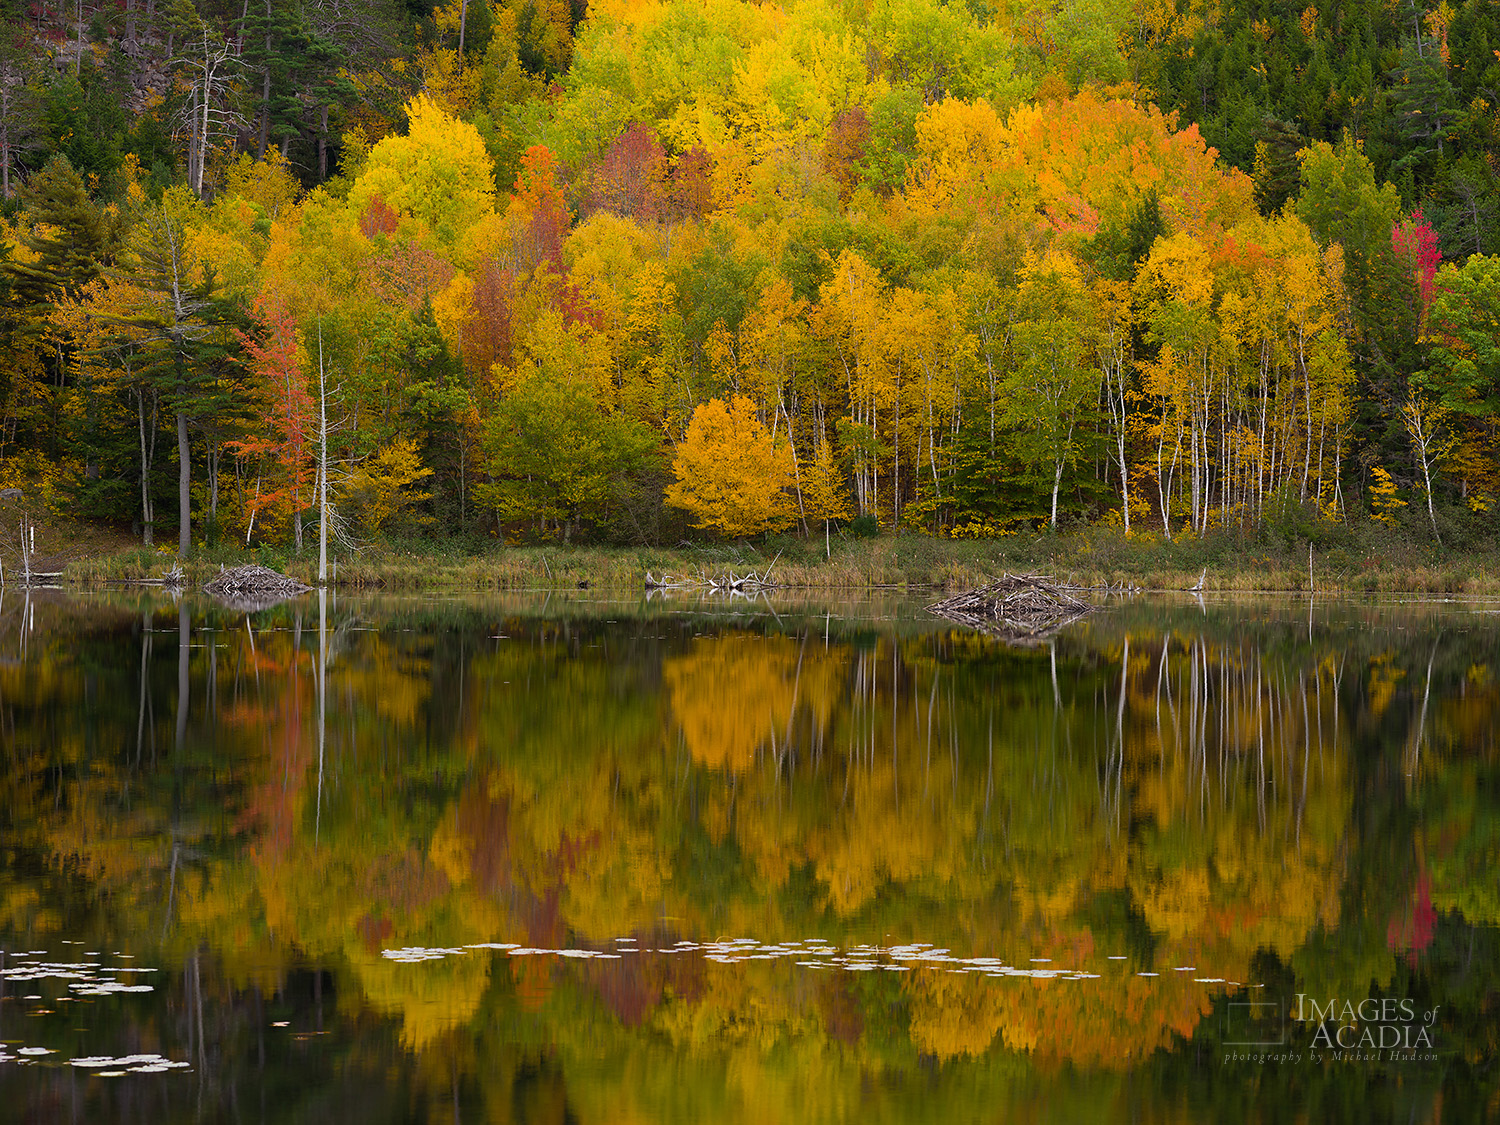 Autumn foliage reflected in Beaver Dam Pond